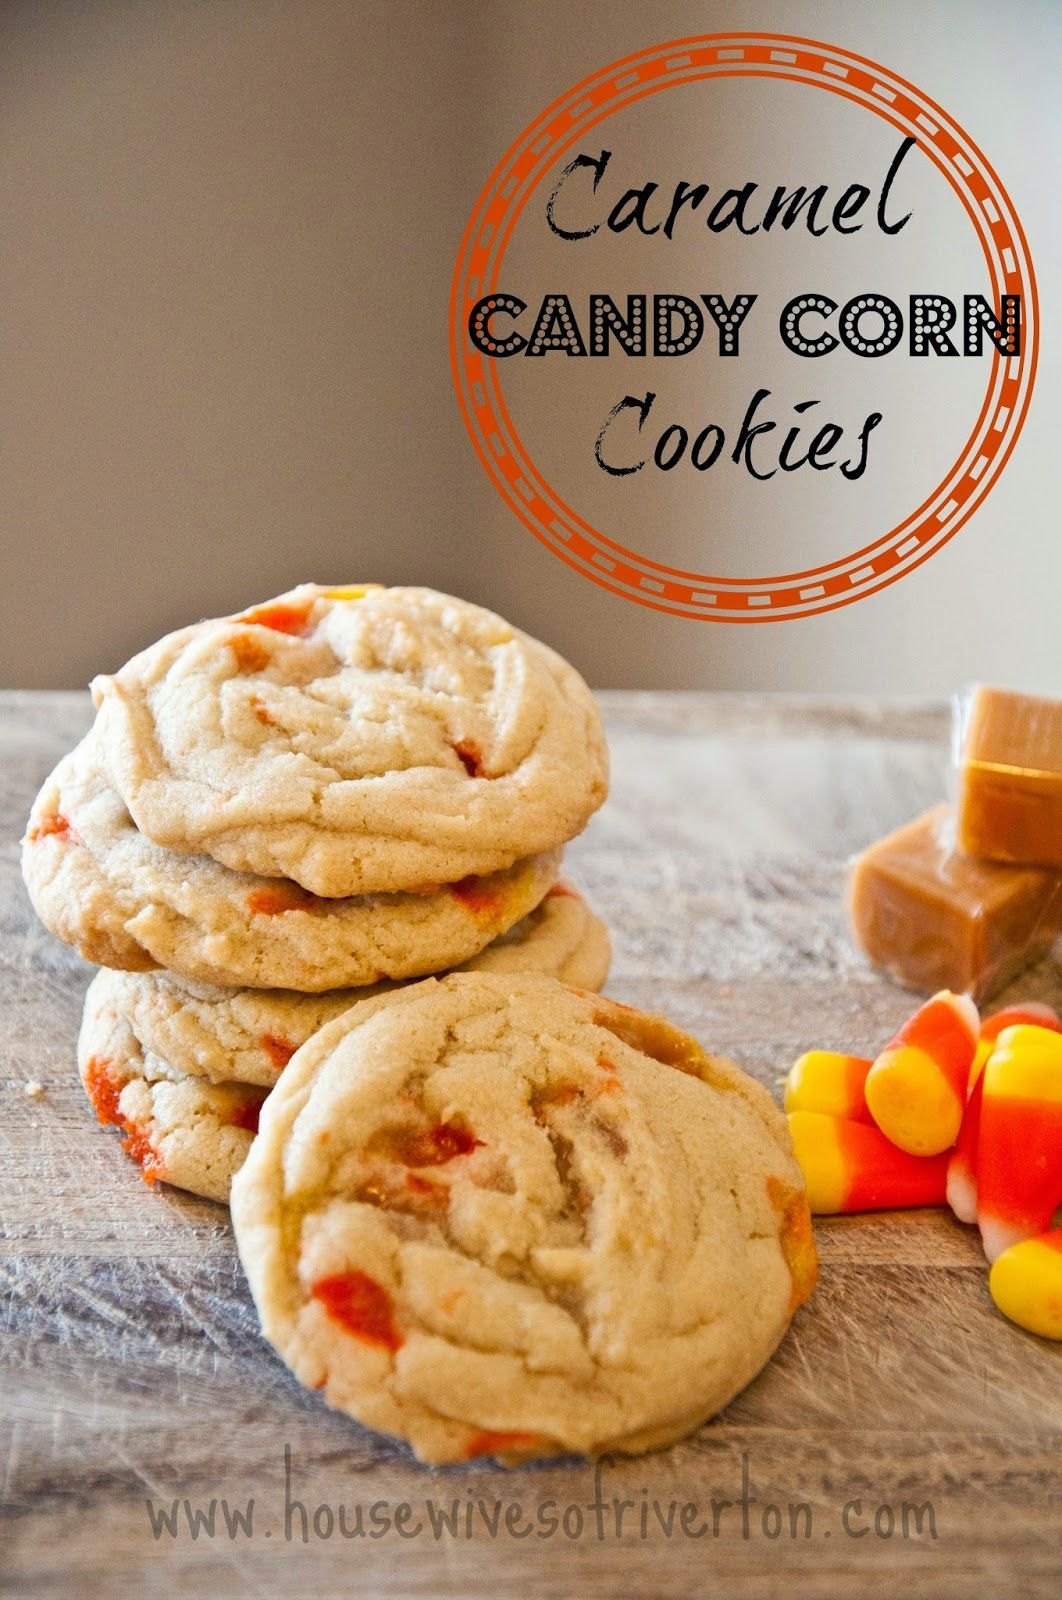 Caramel Candy Corn Cookies - Housewives of Riverton